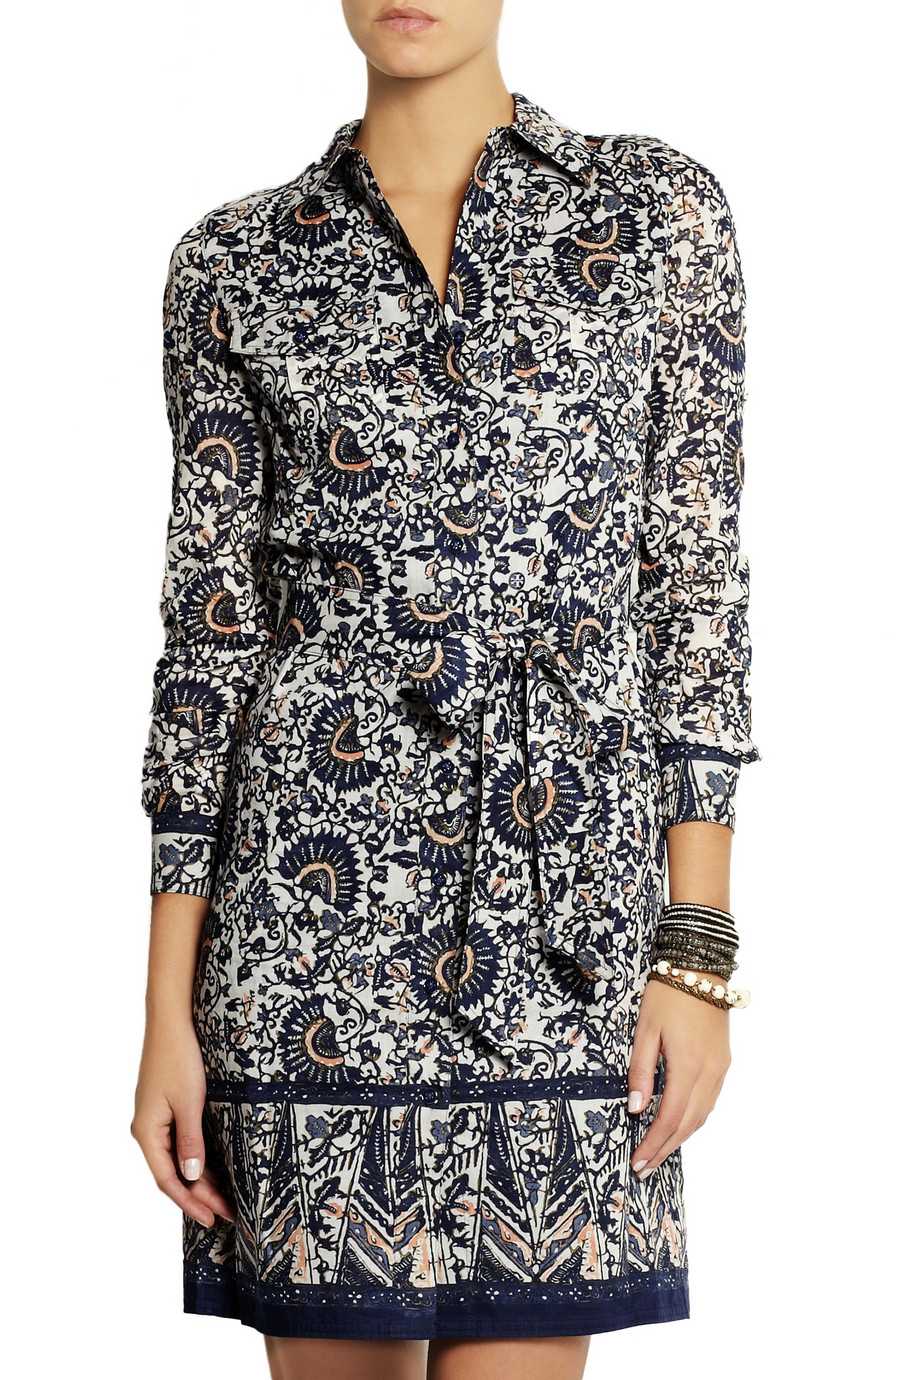 d153710f422 Tory Burch Brigitte Printed Cotton-voile Shirt Dress in Blue - Lyst